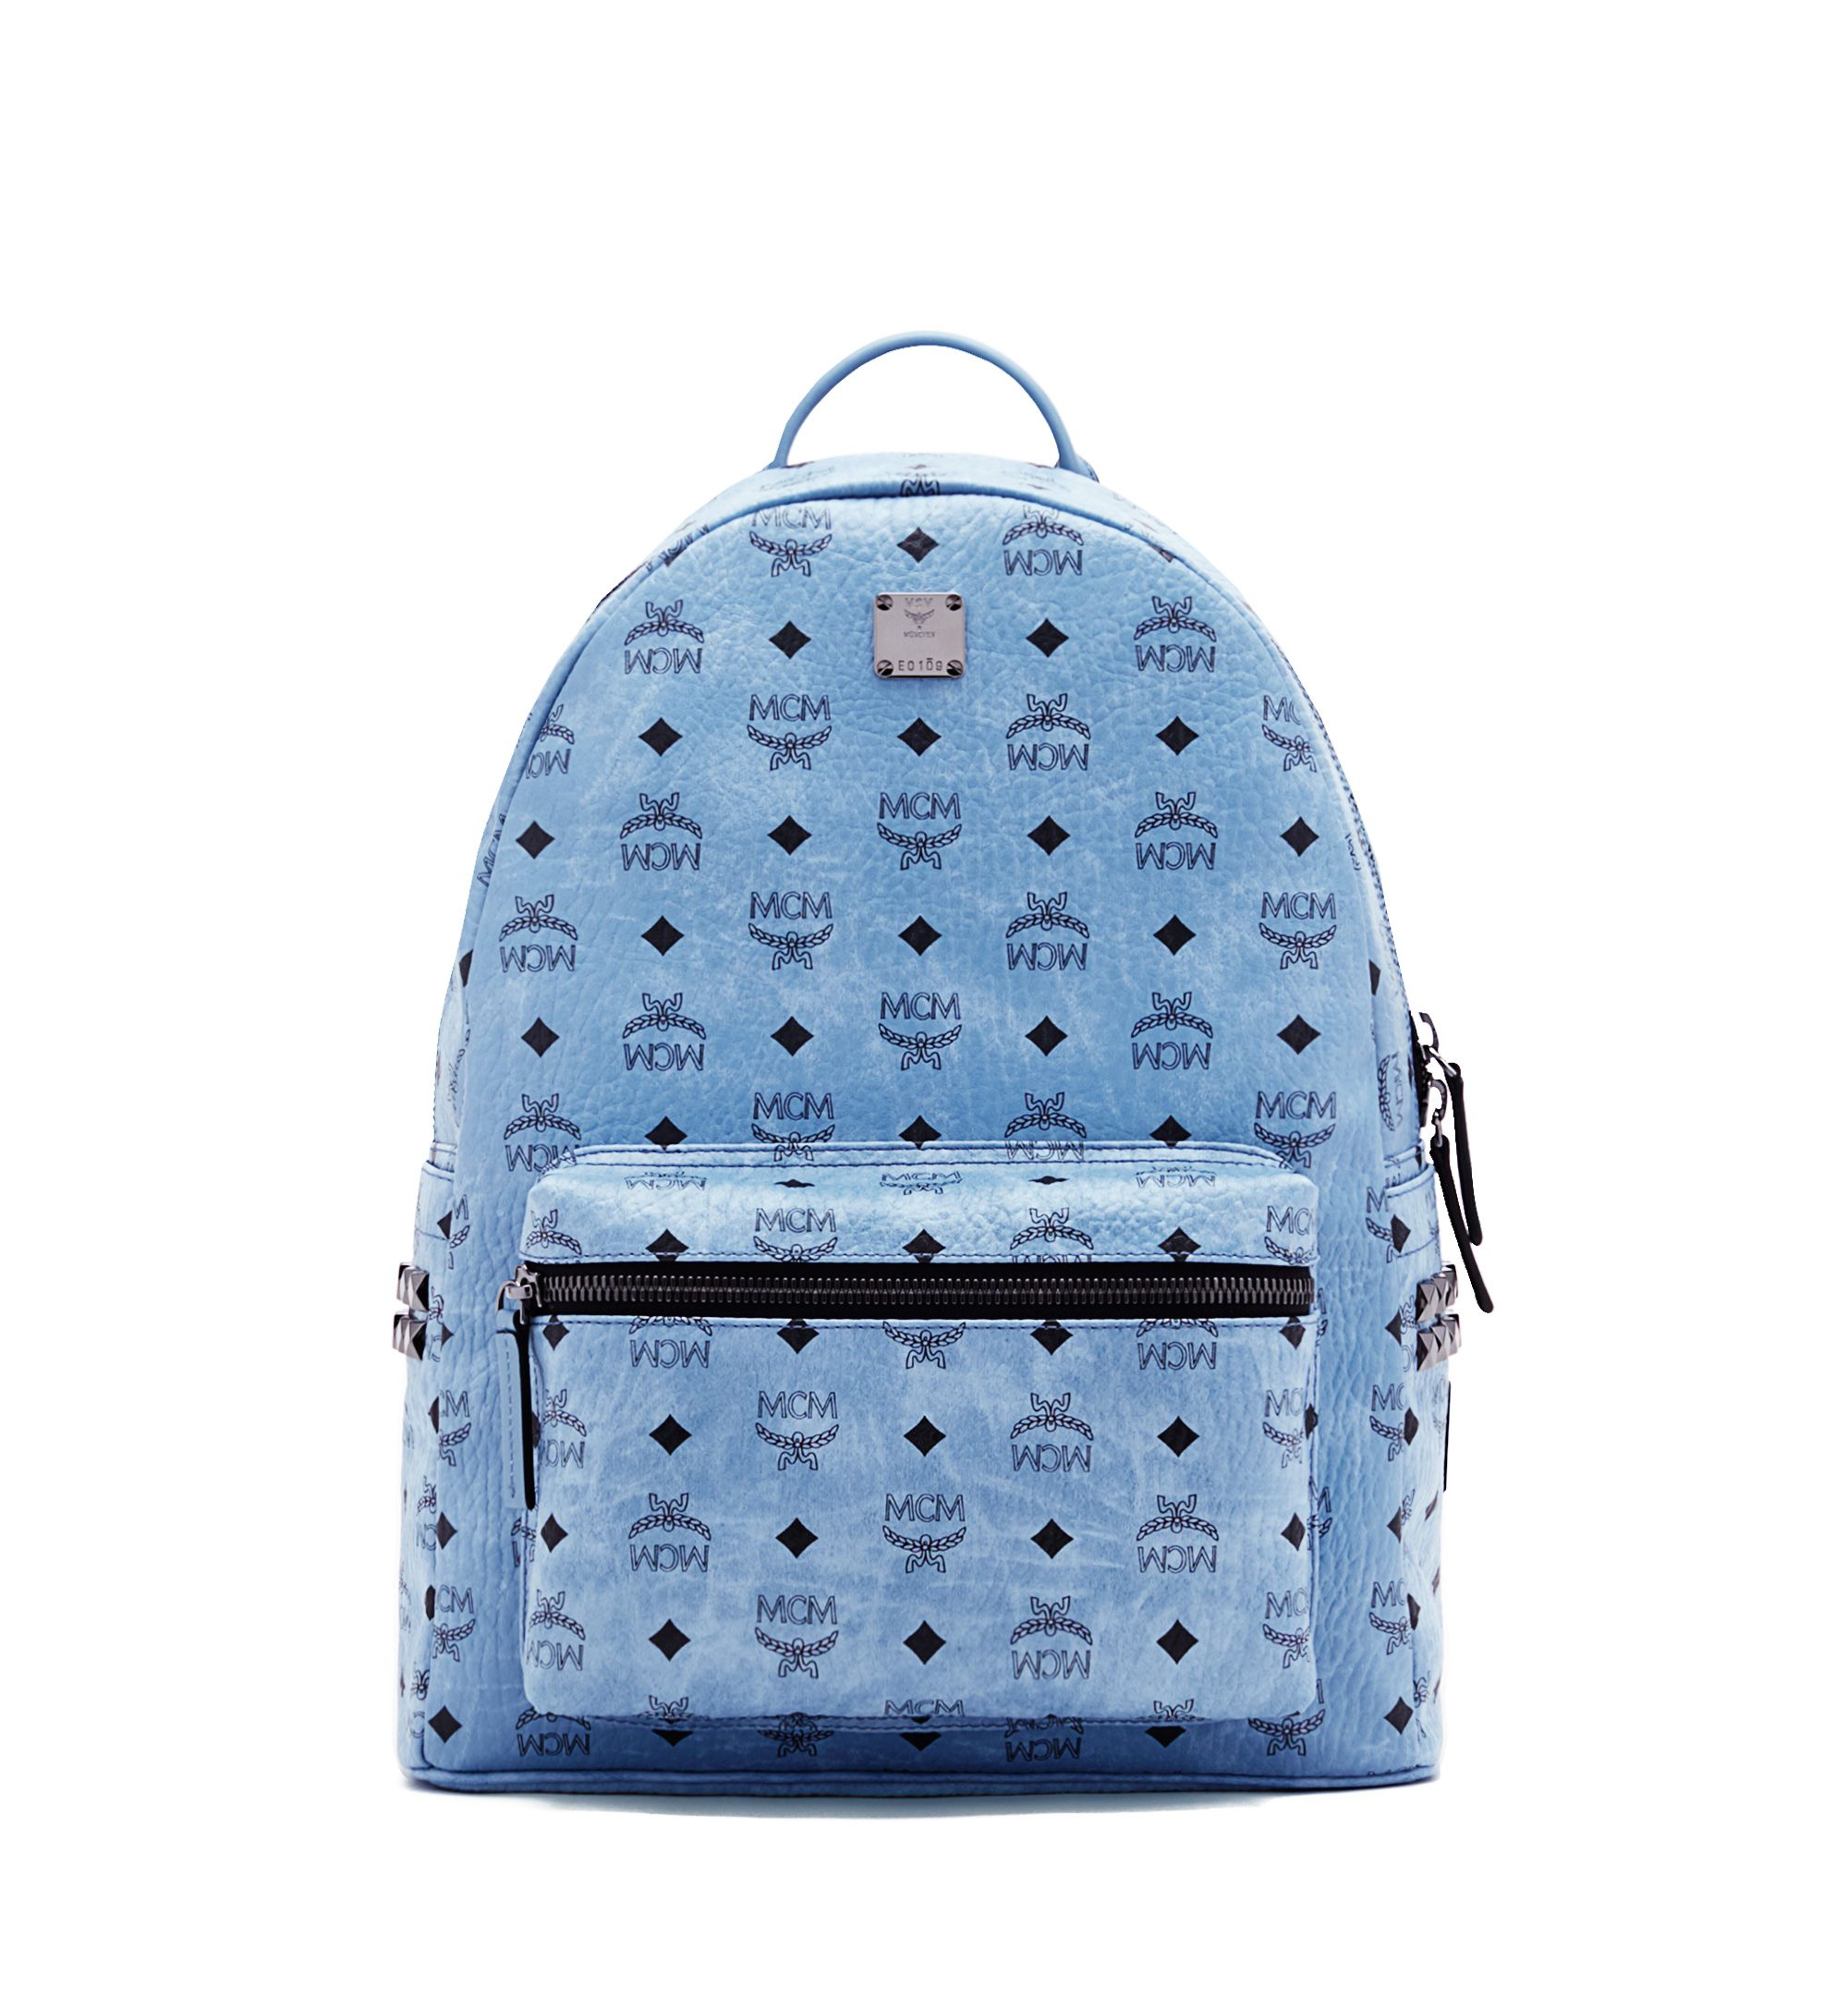 65b7d26f21c MCM STARK BACKPACK IN SIDE STUDDED VISETOS.  mcm  bags  lining  canvas   backpacks